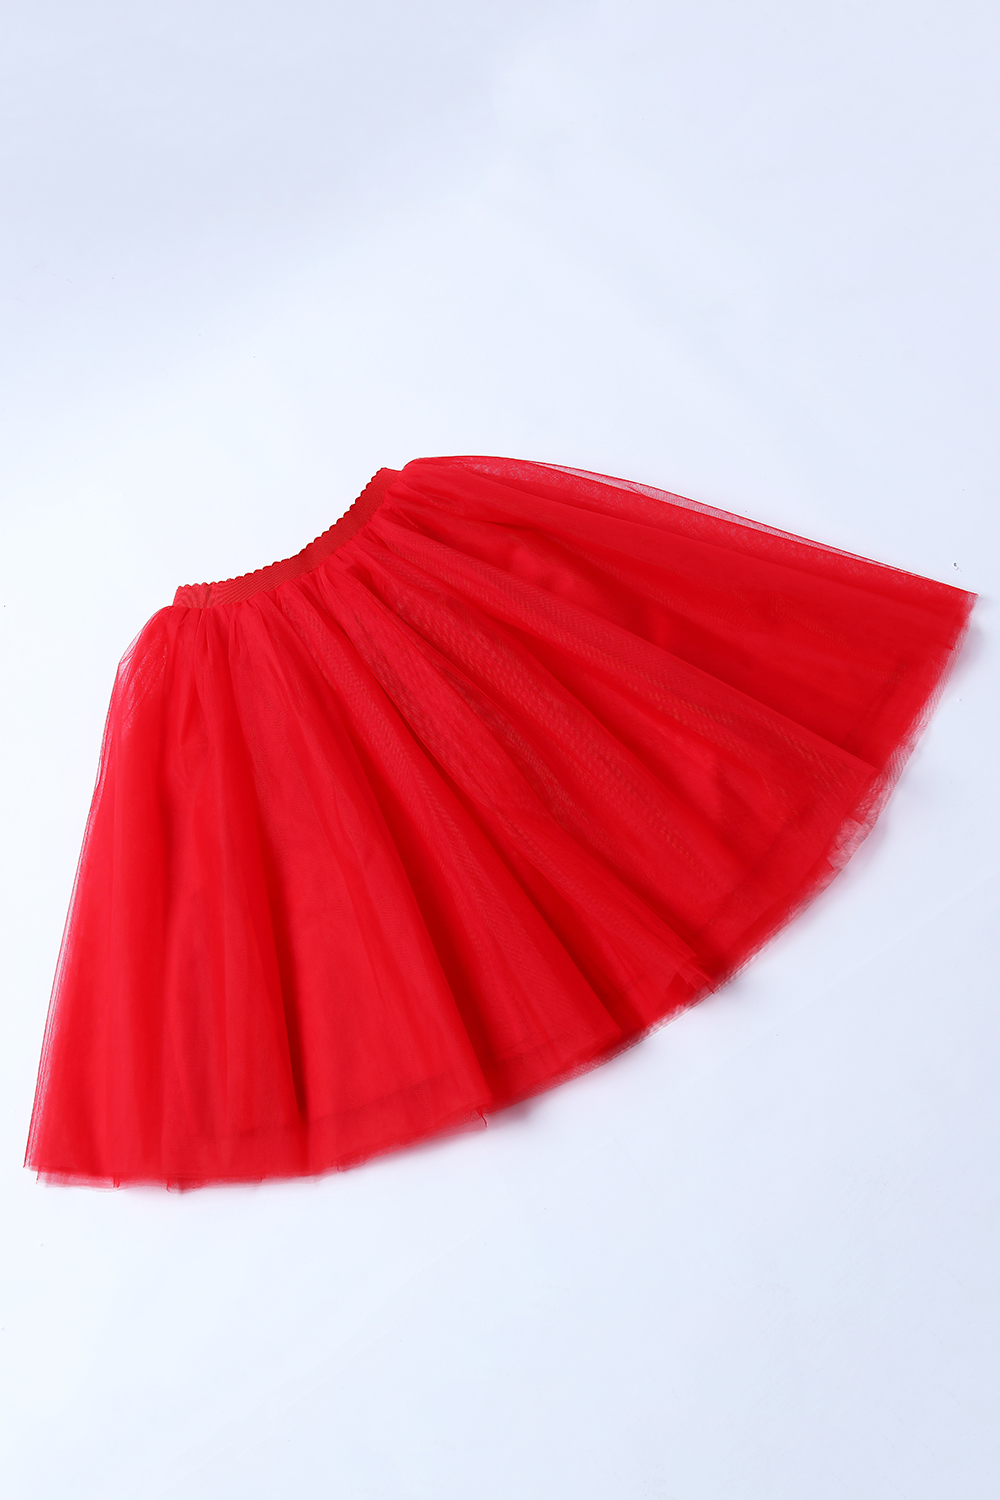 Купить с кэшбэком Short Red Tulle Wedding Pettciaot Crinoline Hoopless Woman Skirt Underskirt Adult Tutu Bridal Accessories 2020